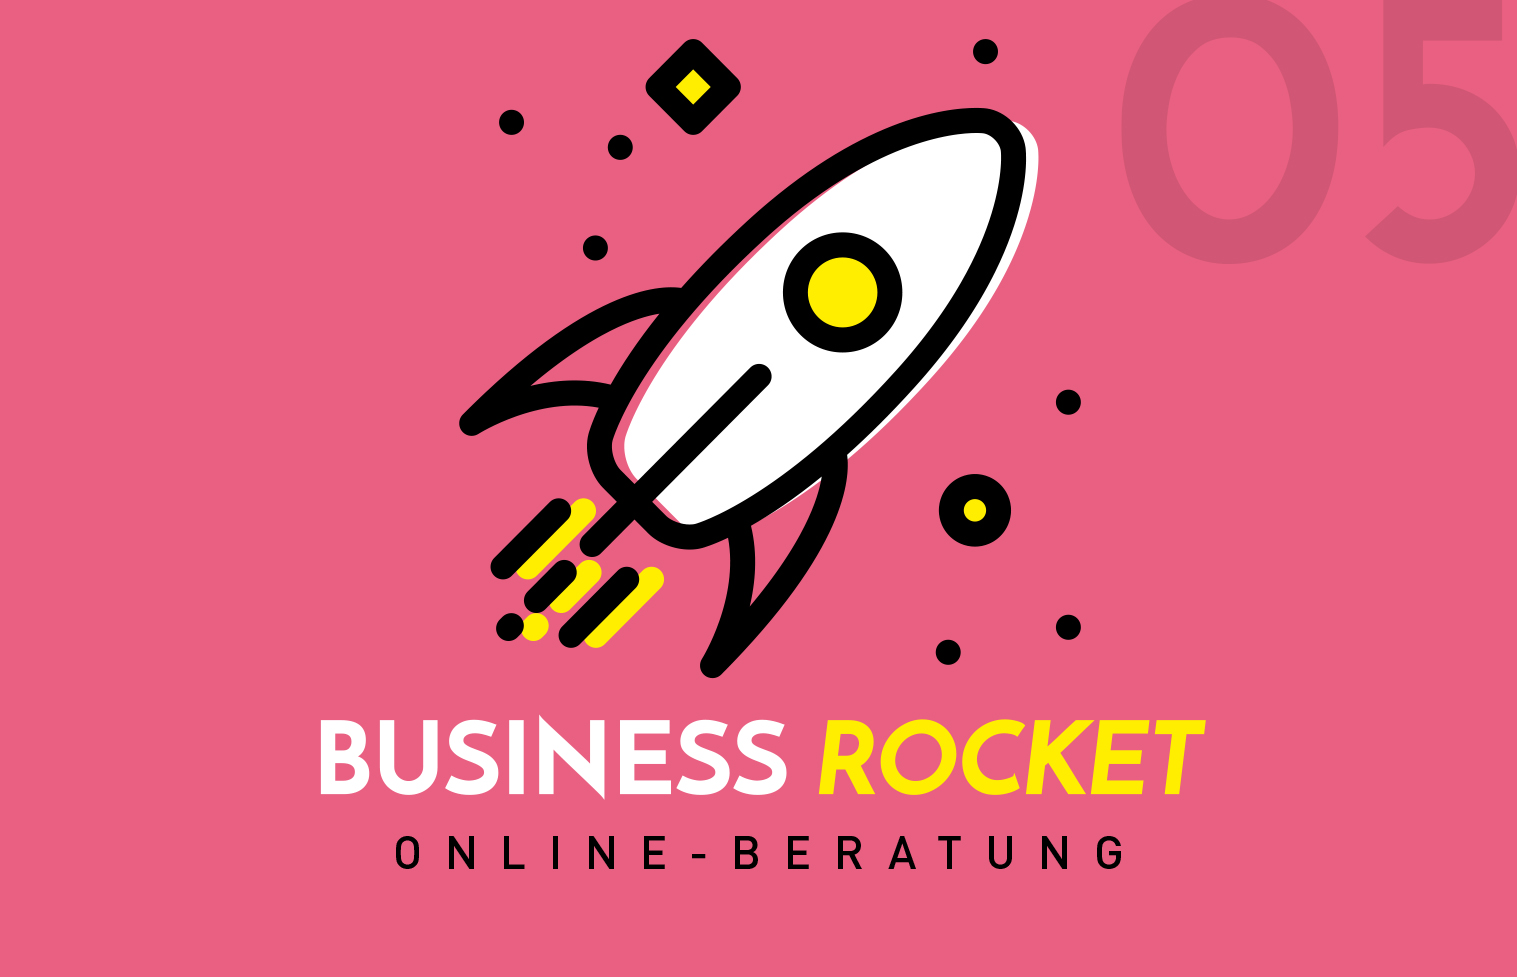 ElisaZunder, Marketing Agentur, Social Media, Lüdenscheid, Sauerland, Nordrhein-Westfalen, Deutschland, Betreuung, Beratung, Facebook-Check-Up, Werbeagentur, Business Coach, Corporate Behavior